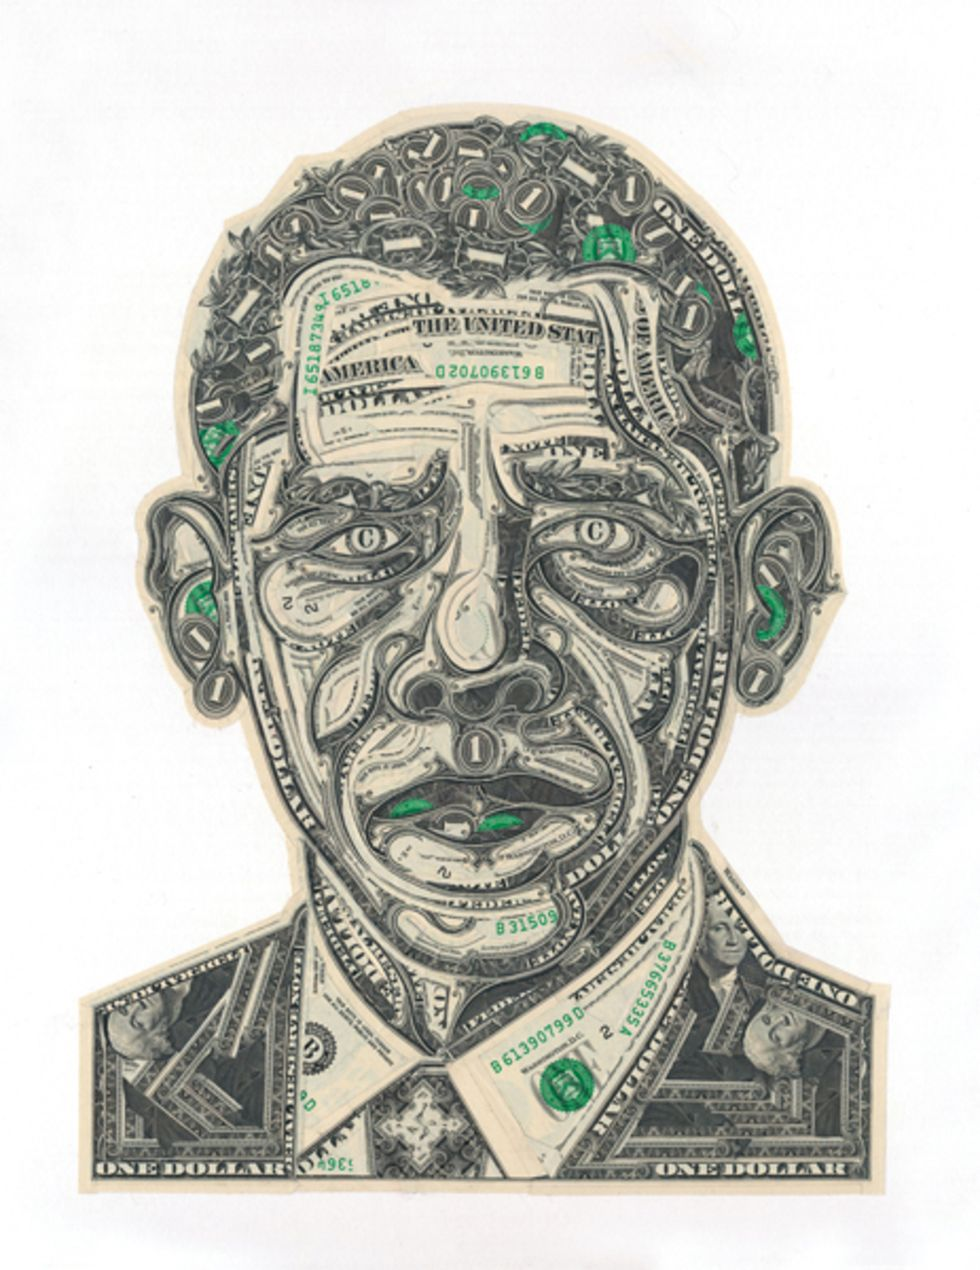 An Artist Transforms Shredded George Washingtons Into Barack Obama